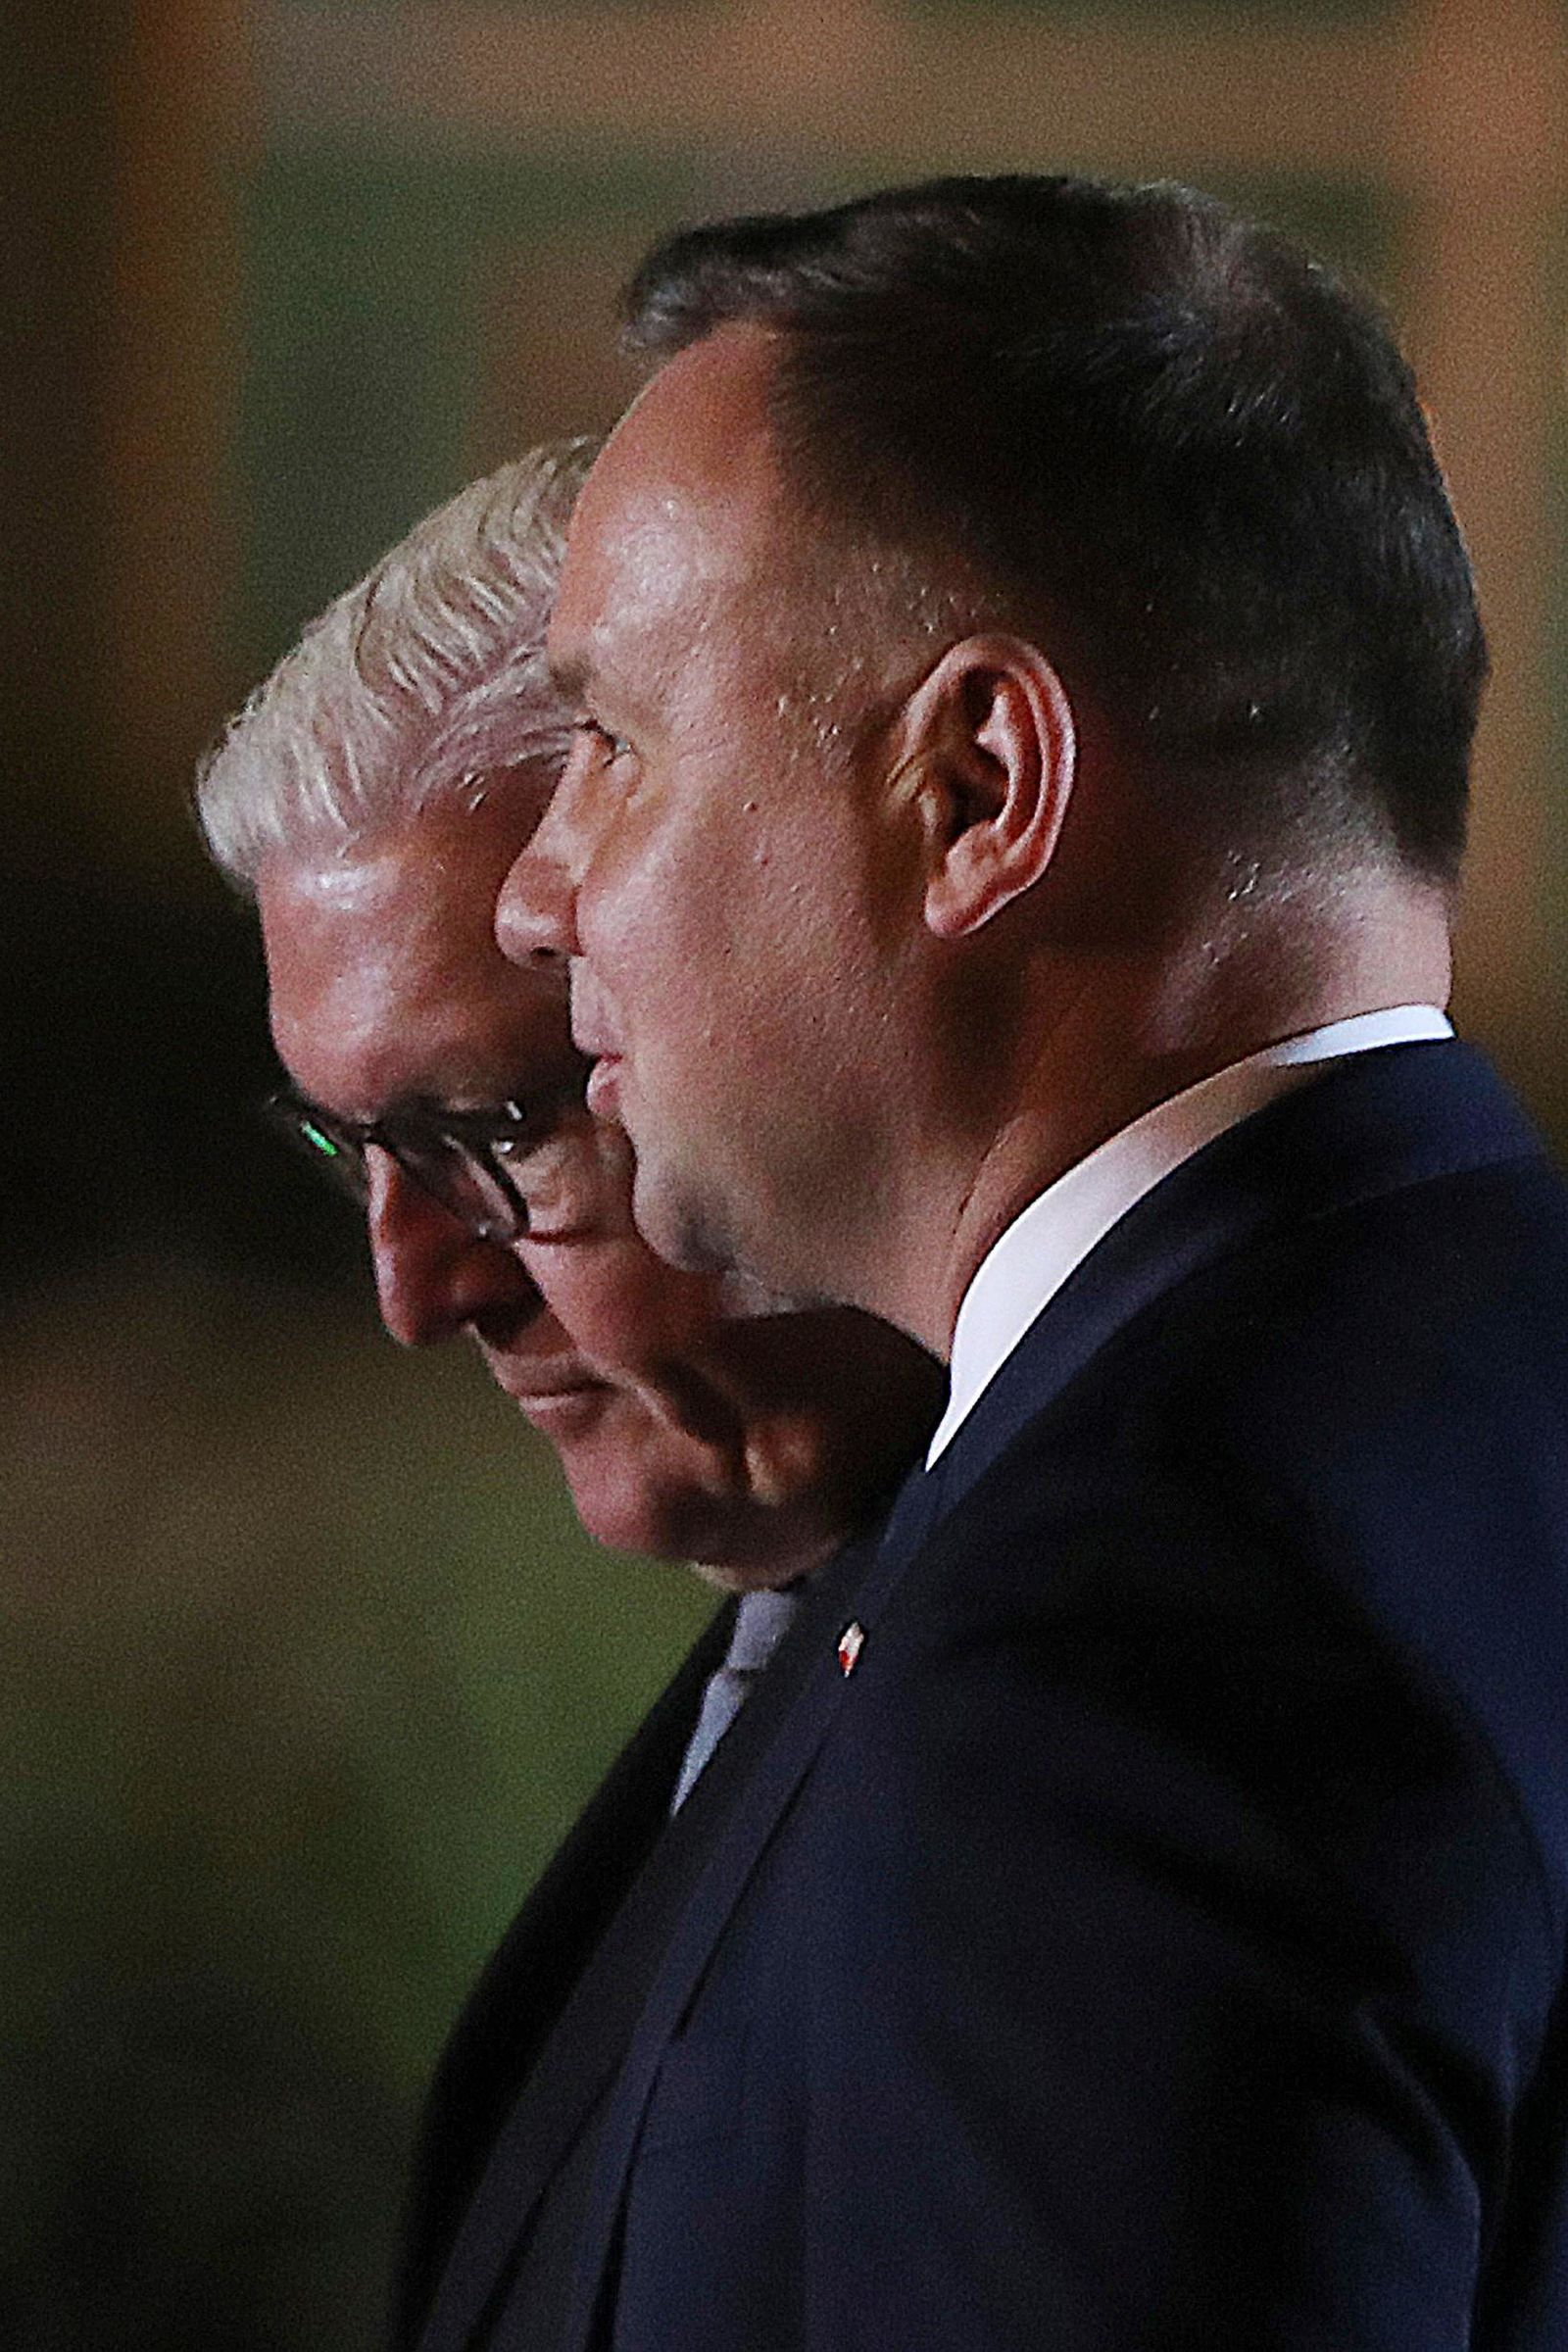 German President Frank-Walter Steinmeier, left, and Polish President Andrzej Duda attend a ceremony marking the 80th anniversary of the start of World War II, in Wielun, Poland, Sunday, Sept. 1, 2019. The ceremony started at 4.40 a.m., the exact hour that, according to survivors, the war's first bombs fell, killing civilians (AP Photo/Czarek Sokolowski)